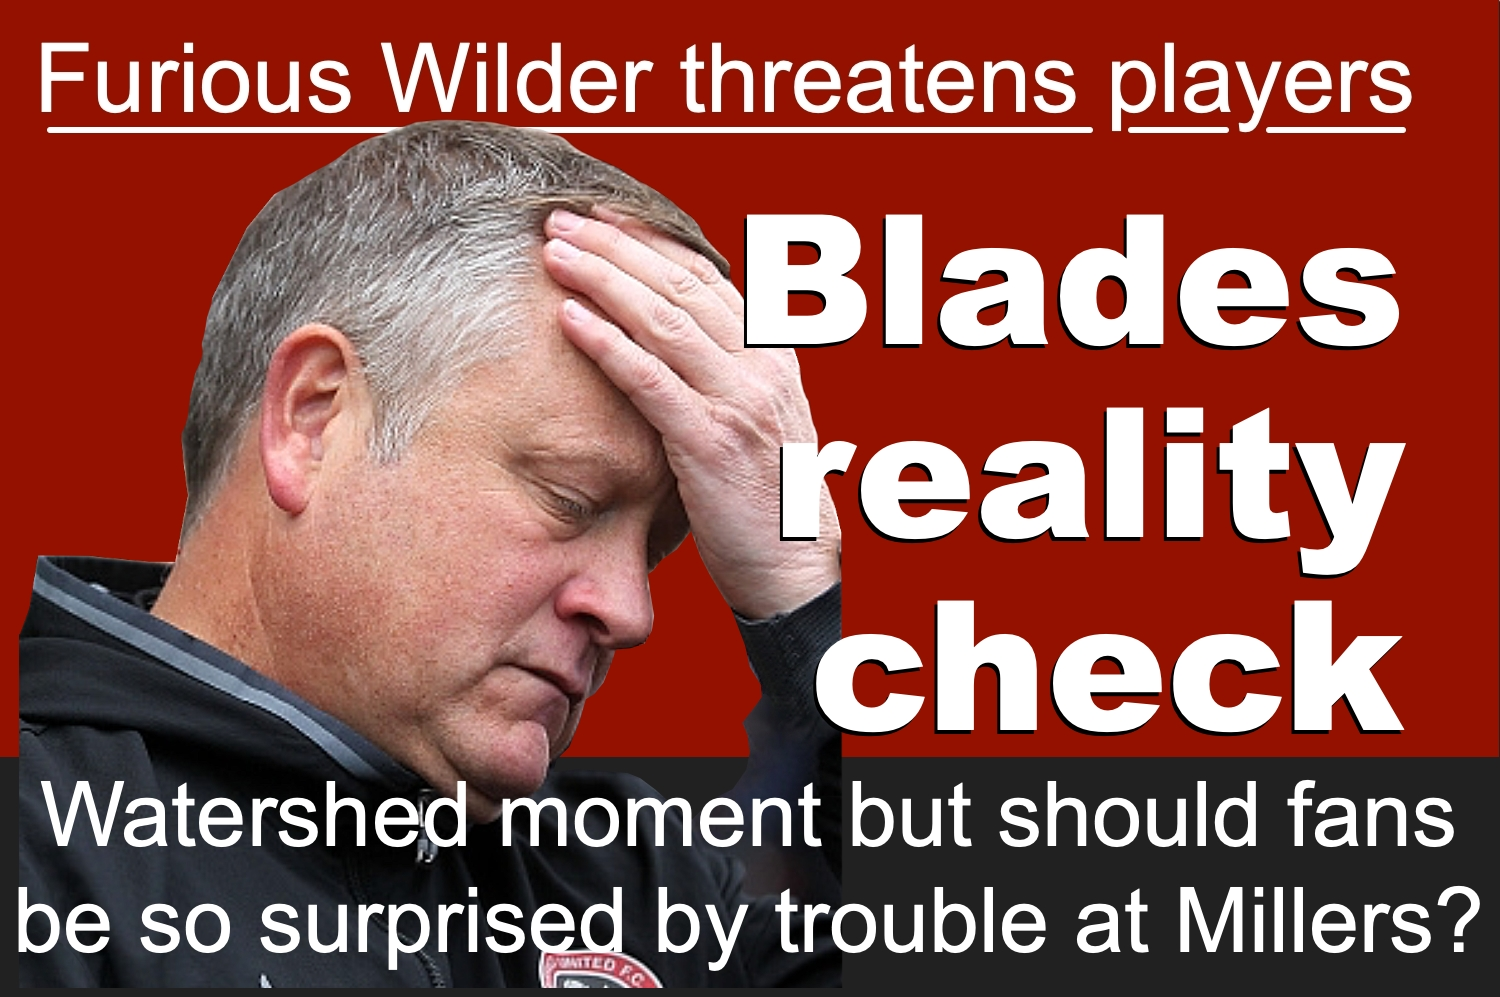 Sheffield United boss Chris Wilder takes reality check after watershed moment for Blades who 'get out of jail' at rampant Rotherham